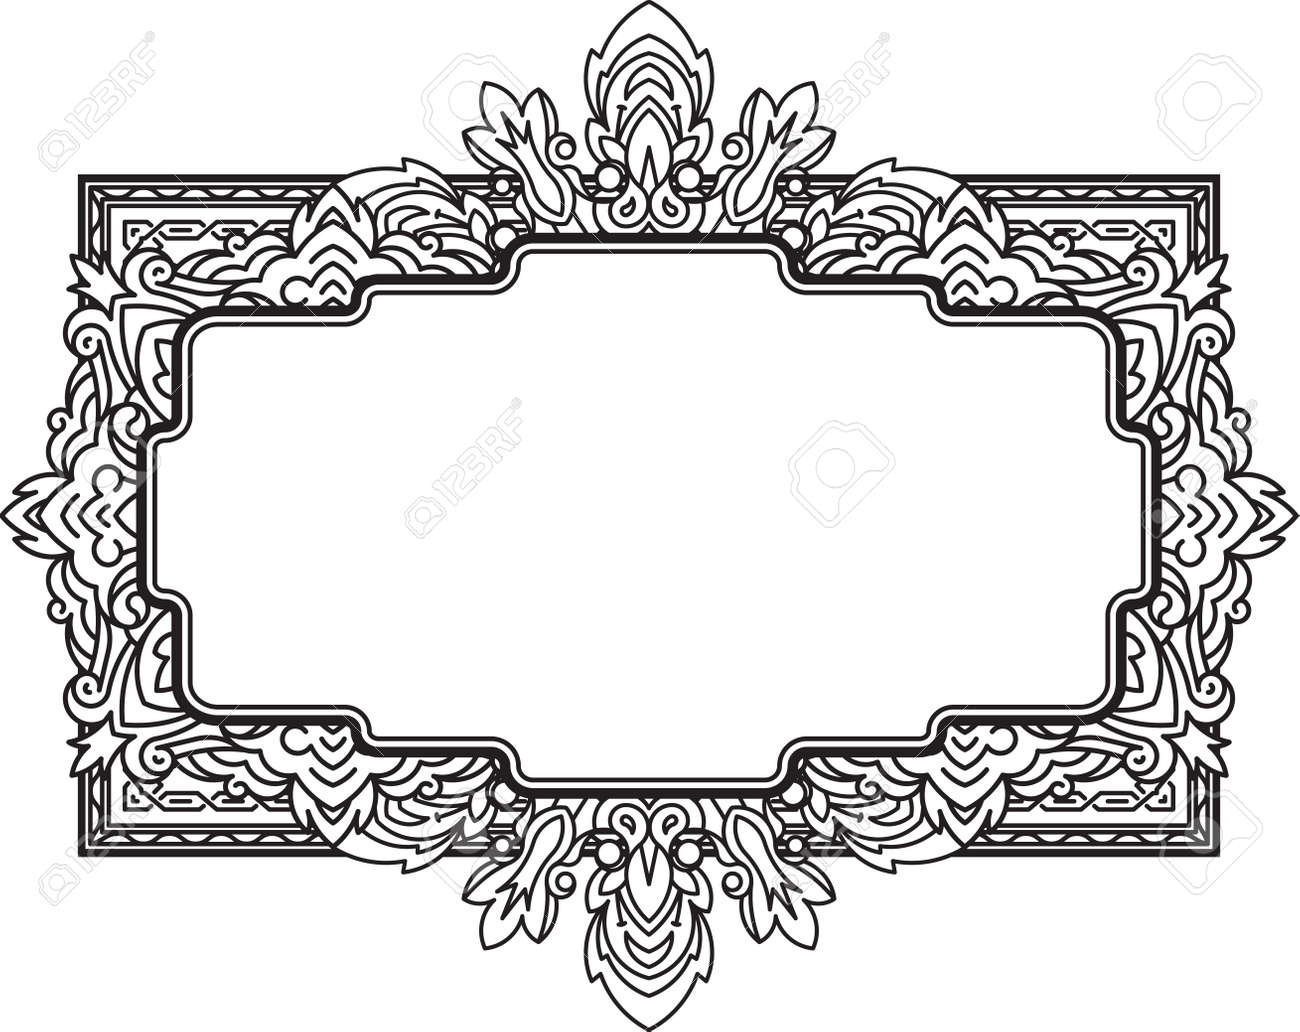 Ethnic Template For Design Wedding Invitations And Greeting Cards